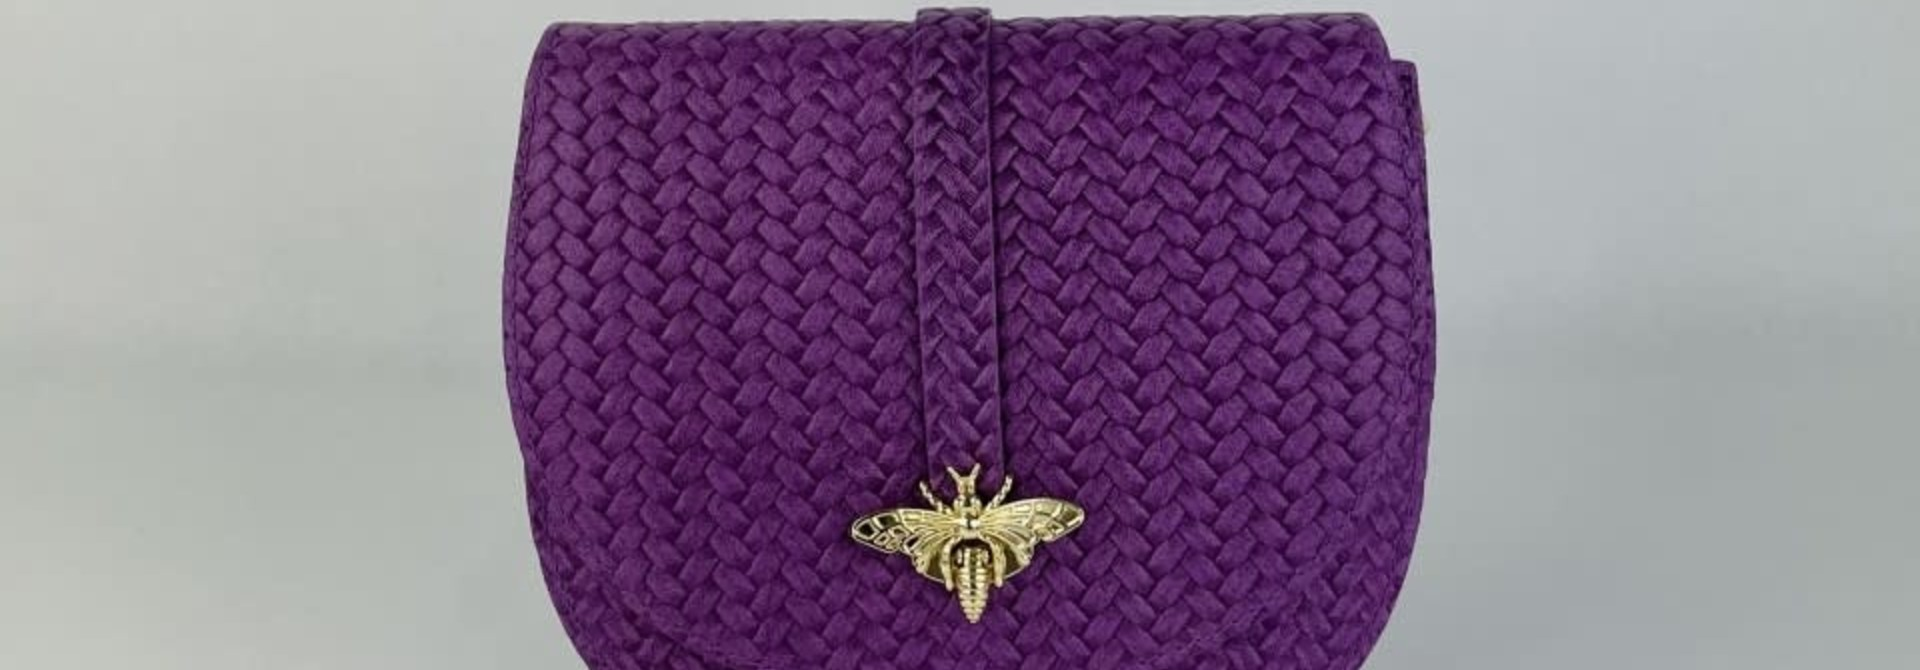 Cléo calf leather dragonfly bag Violet